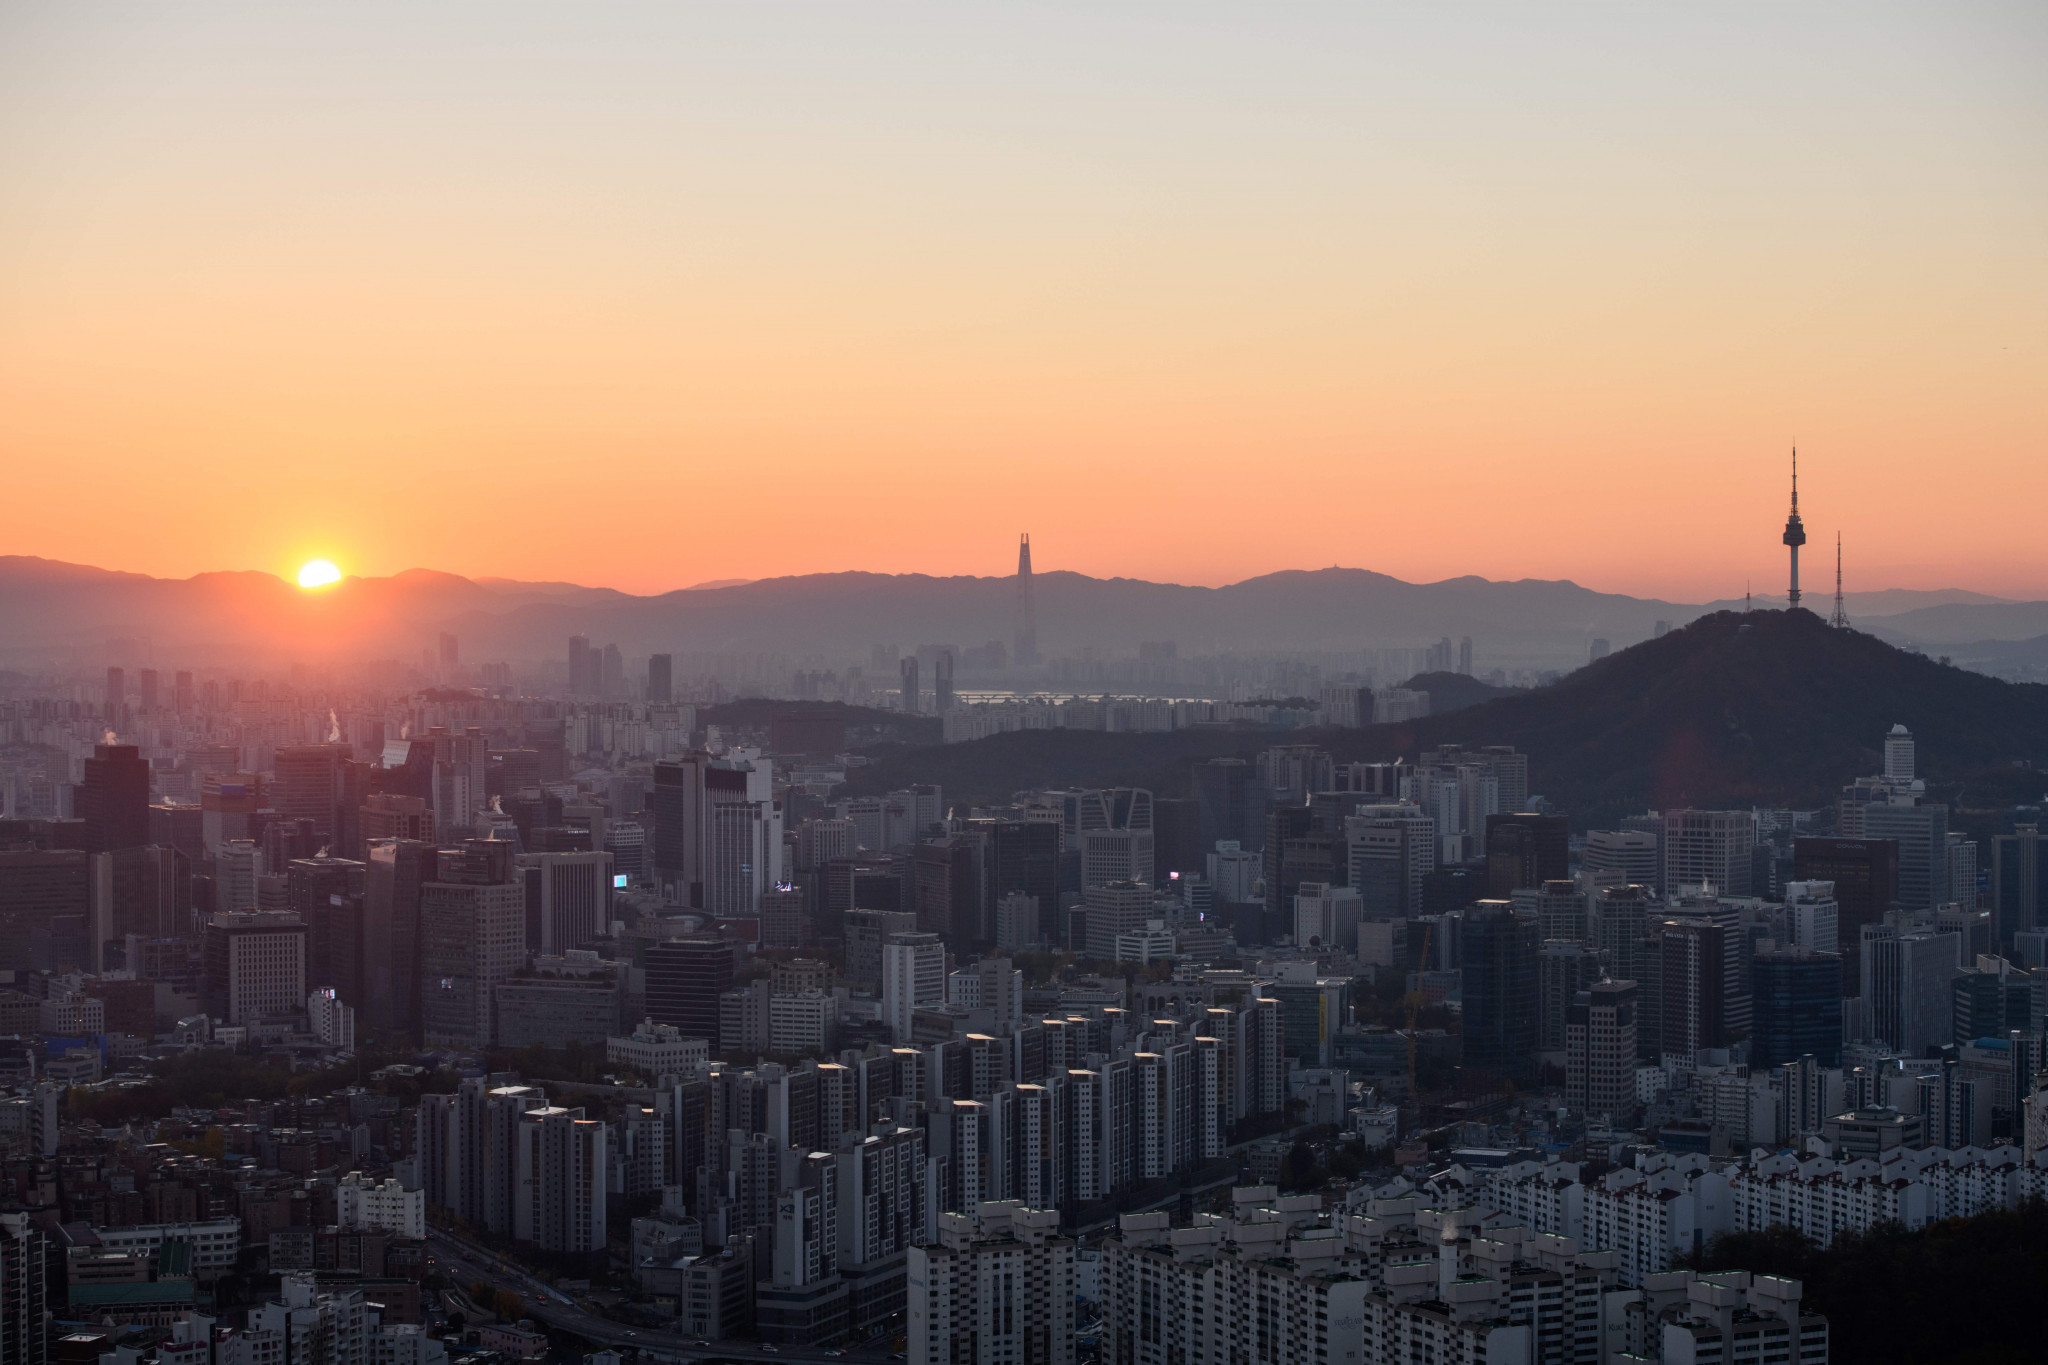 Seoul chosen as South Korean candidate city for joint Korean bid for 2032 Olympics and Paralympics